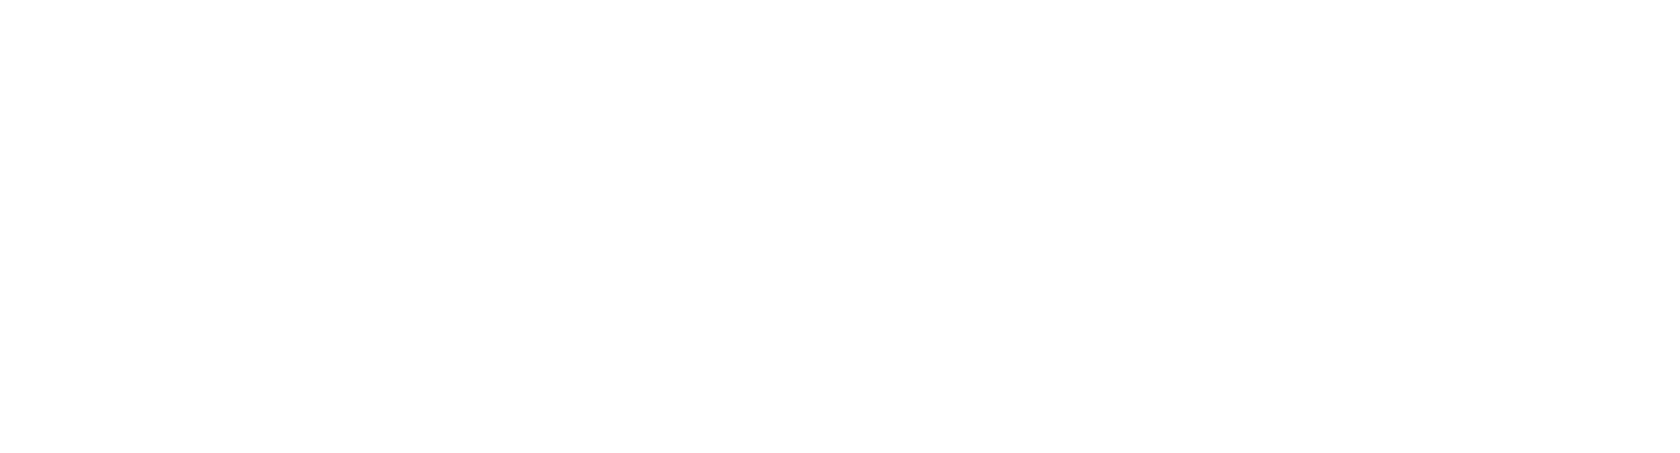 WHAT'S YOUR (FR)AME?